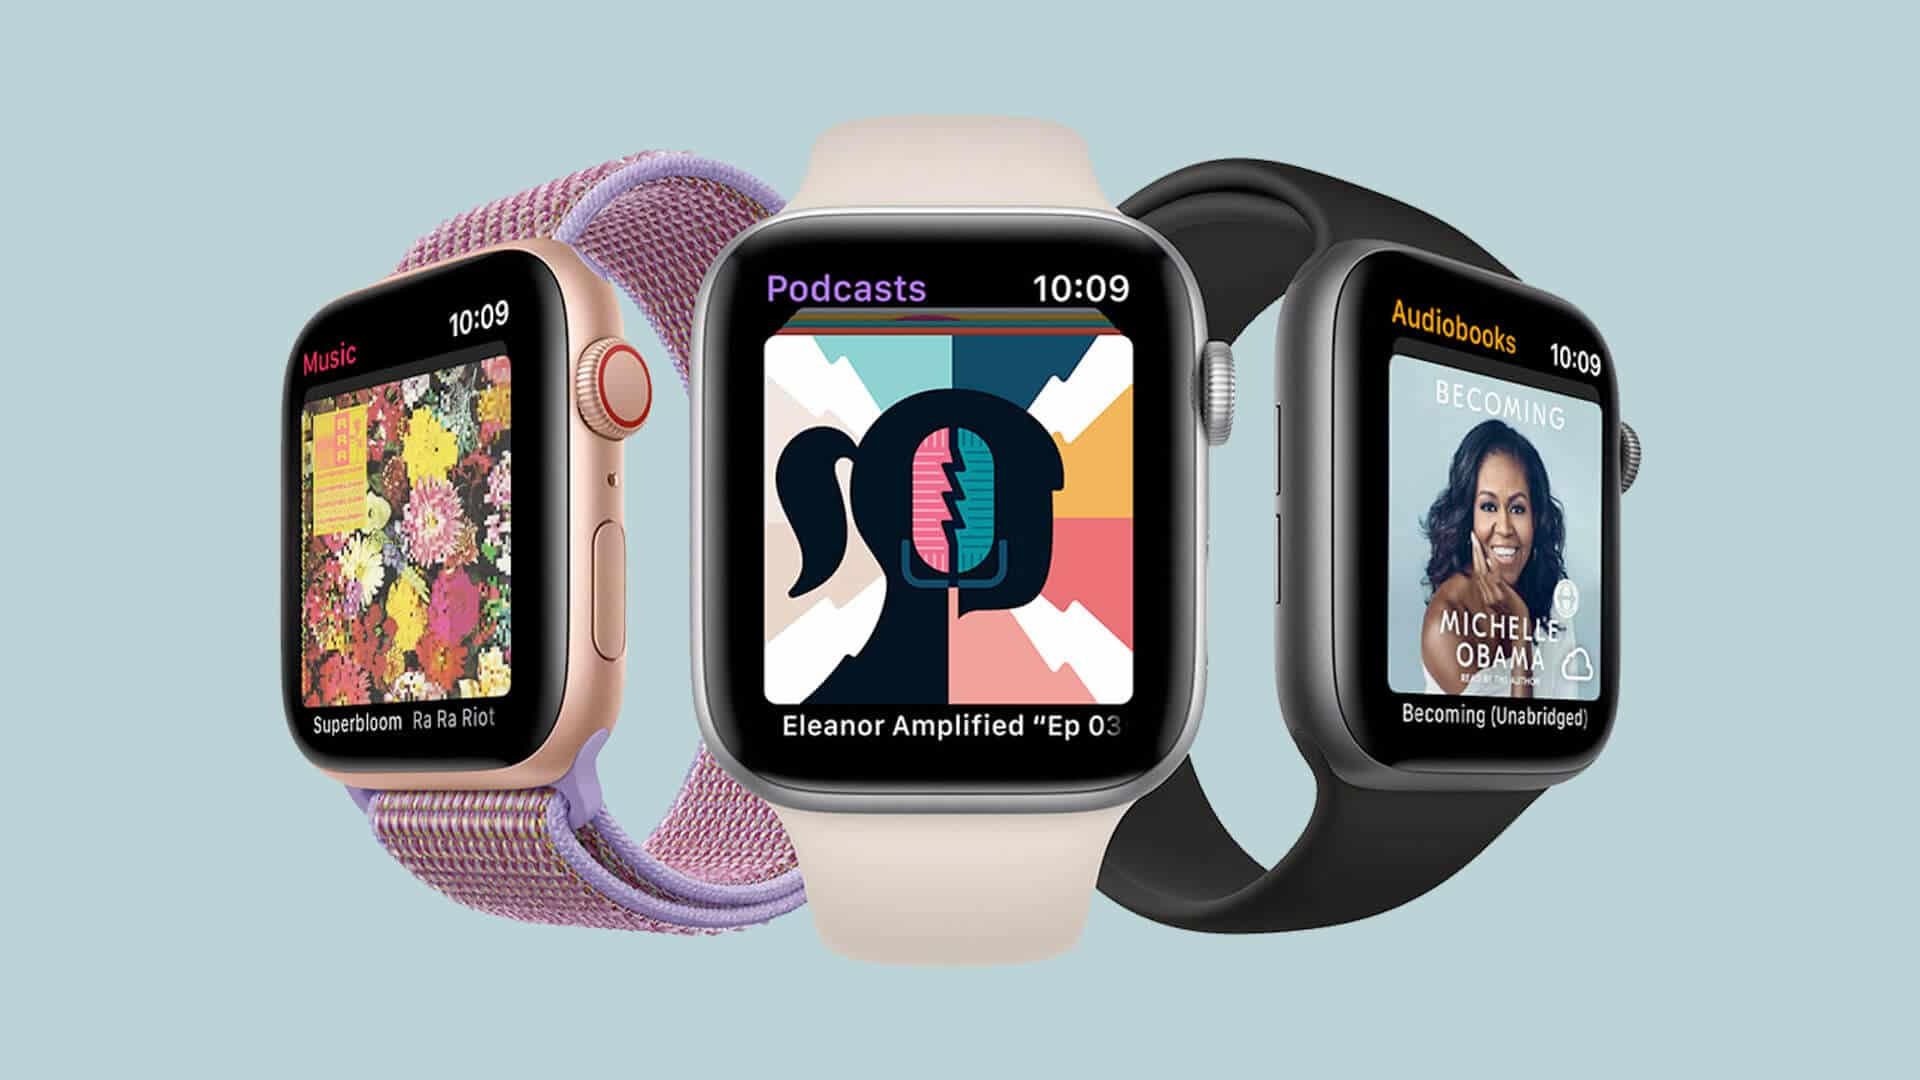 How to Use Books App to Listen Audiobooks on Apple Watch in watchOS 6